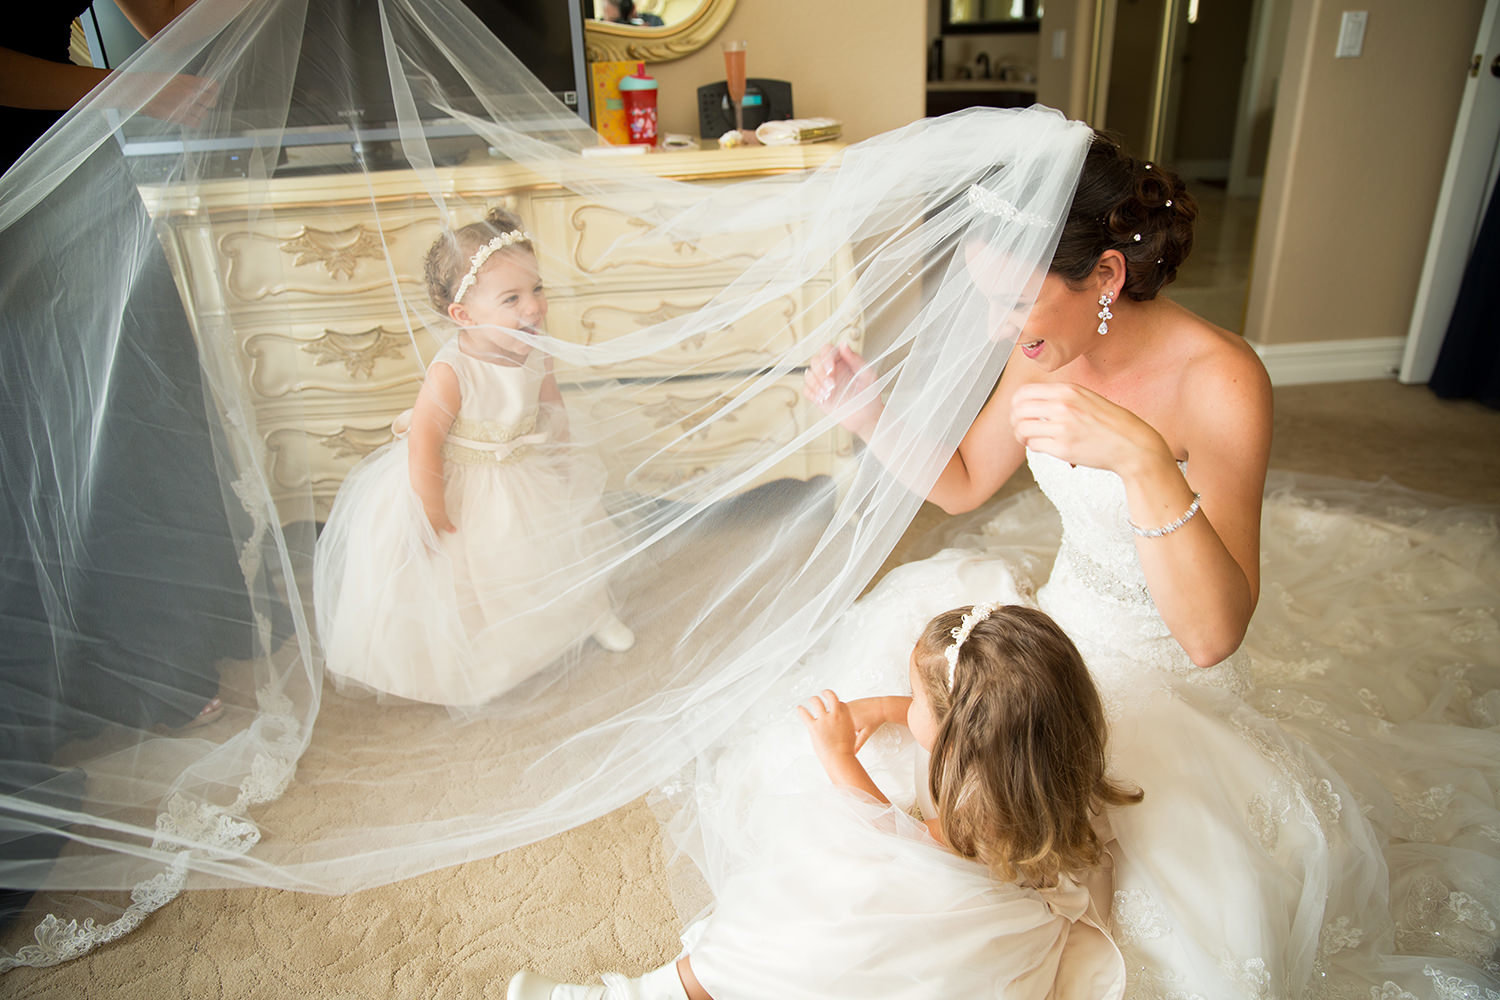 Wonderful moment between the bridesmaid and her flower-girls